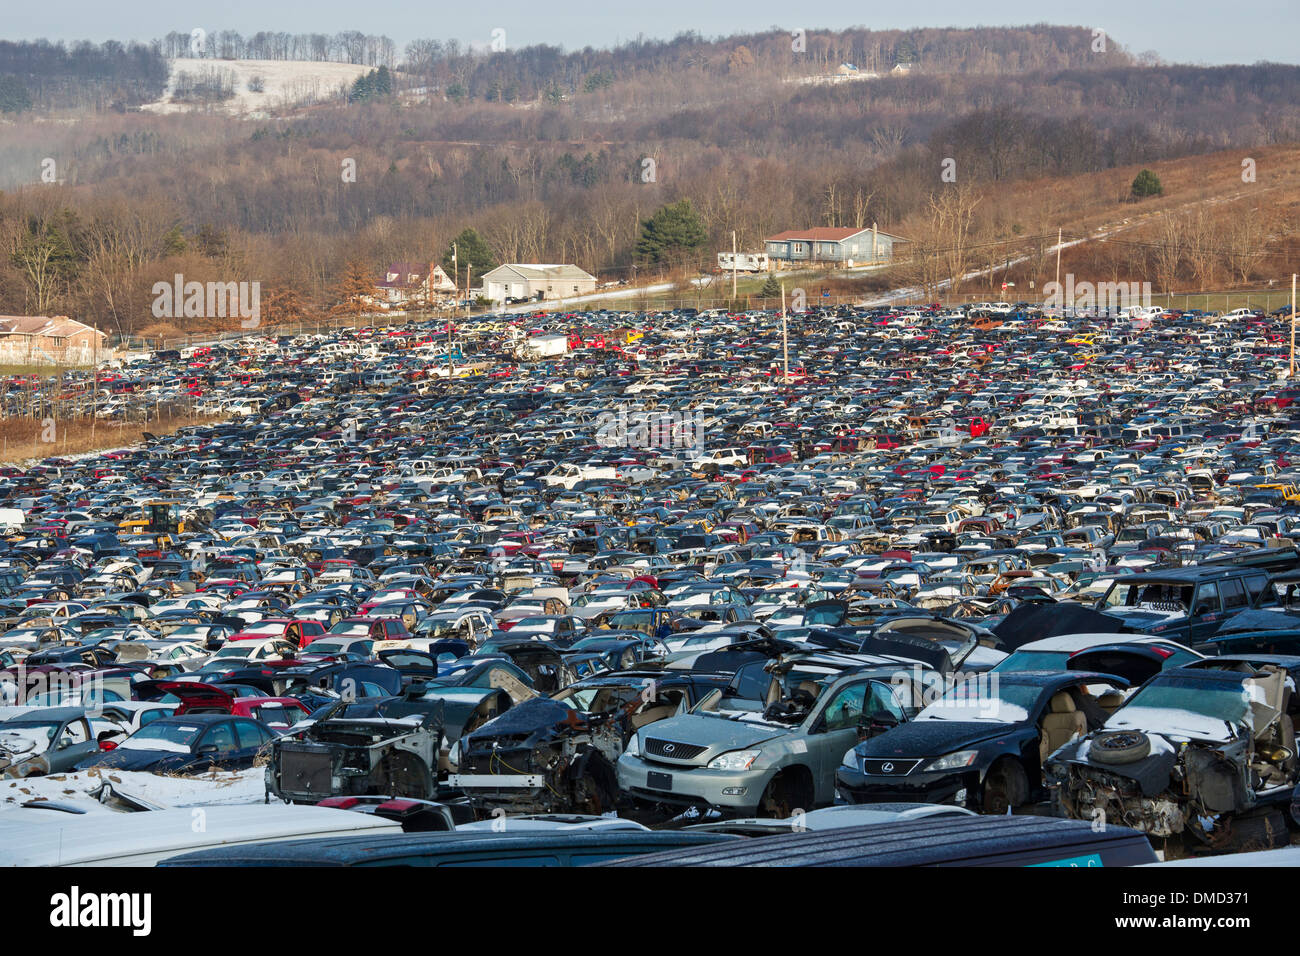 Stoystown Pennsylvania The 50 Acre Auto Junkyard